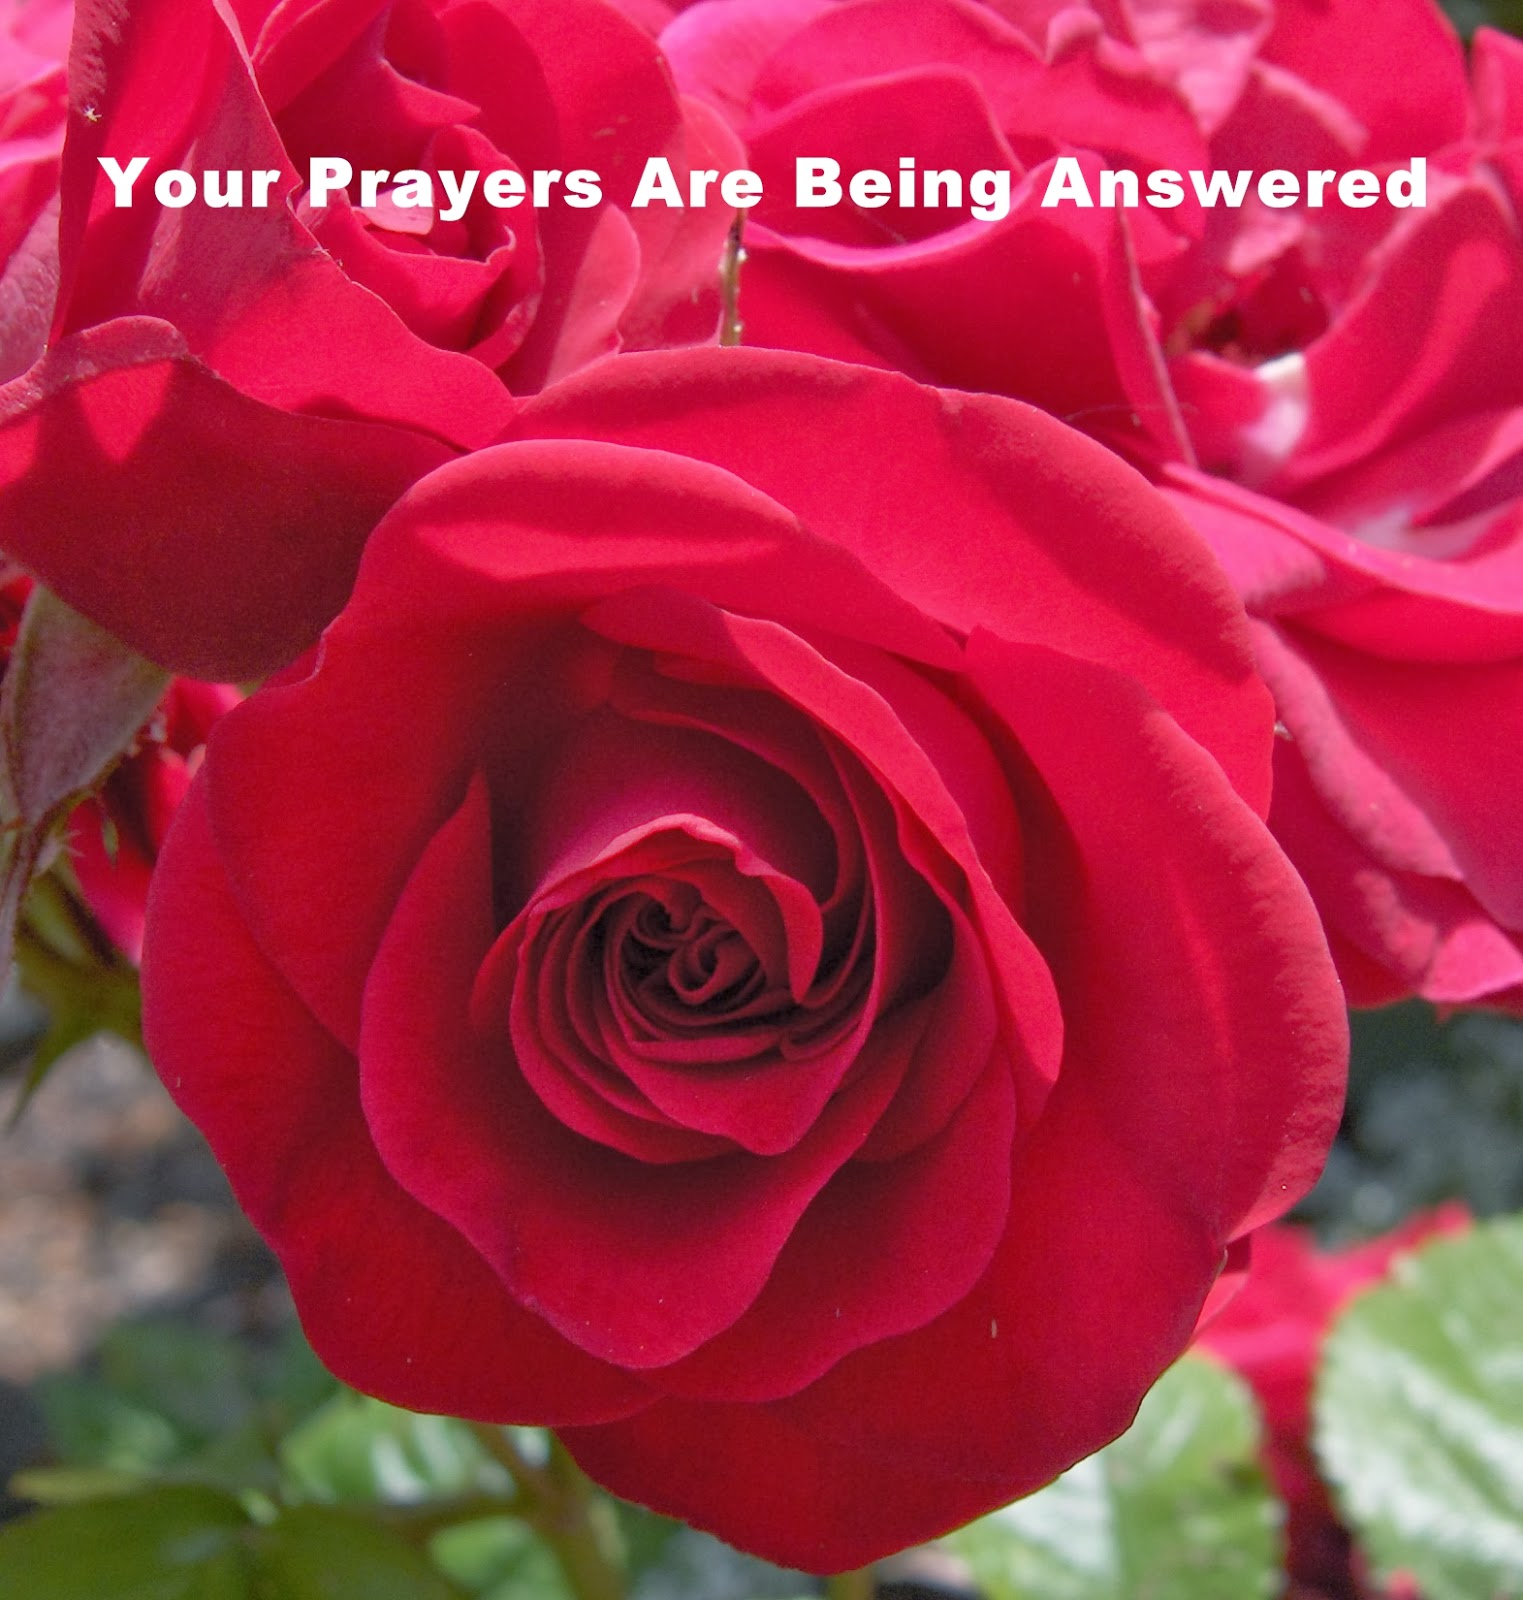 67 Not Out The Meaning Of Roses And White Feathers As A Symbol Of